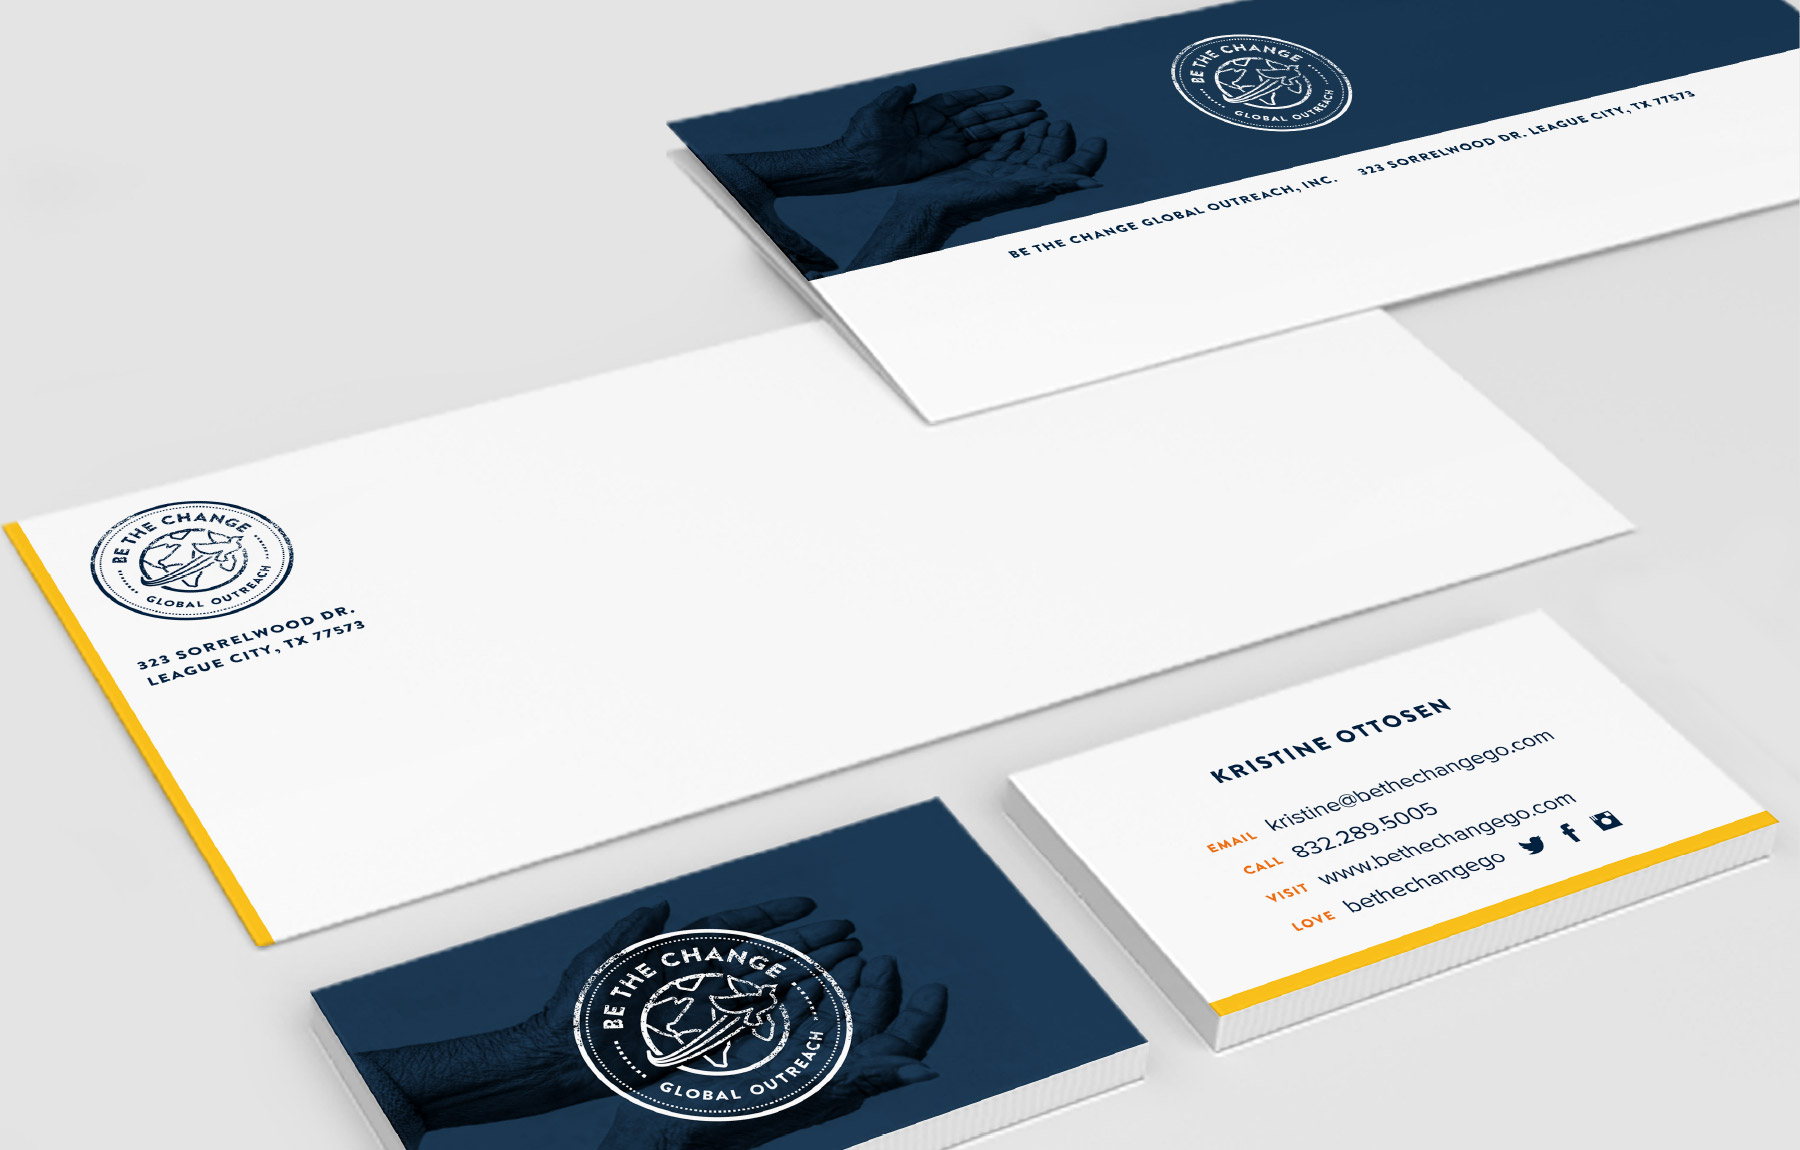 Philanthropy stationery design